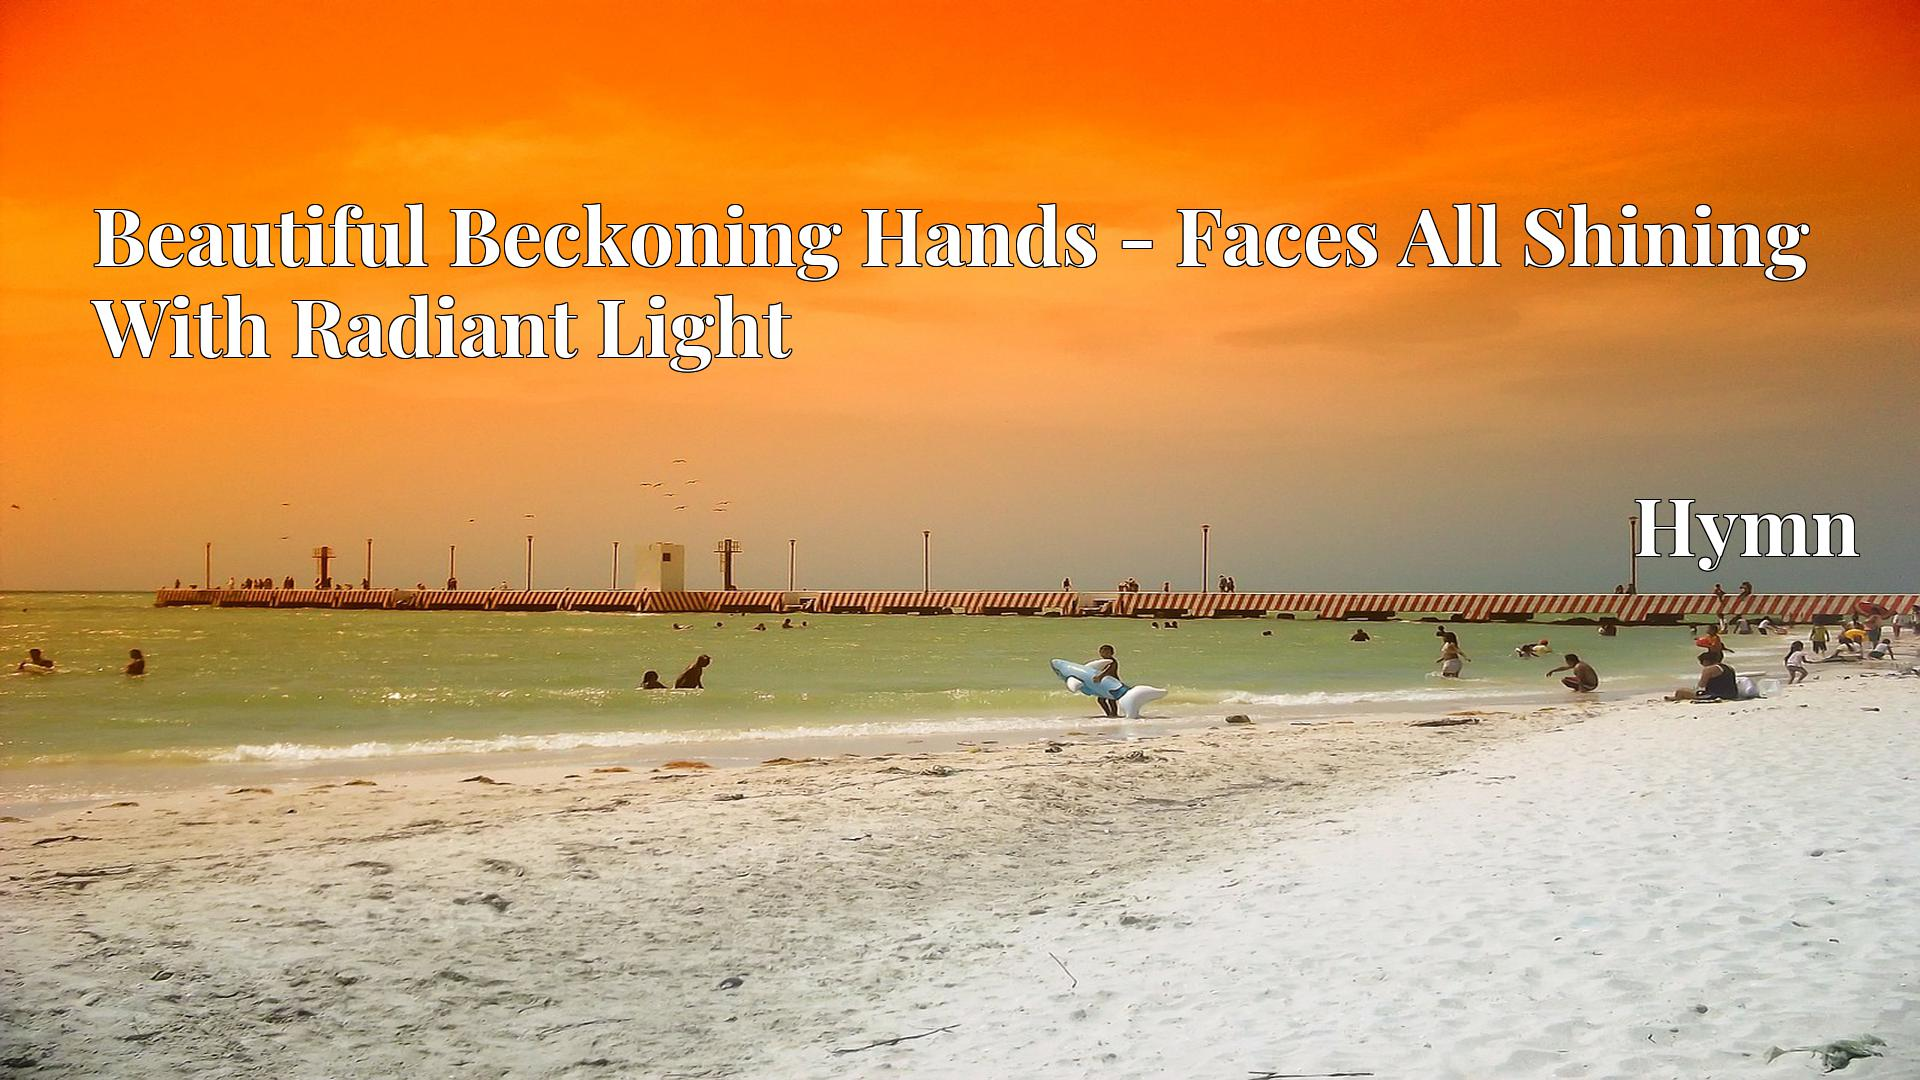 Beautiful Beckoning Hands - Faces All Shining With Radiant Light Hymn